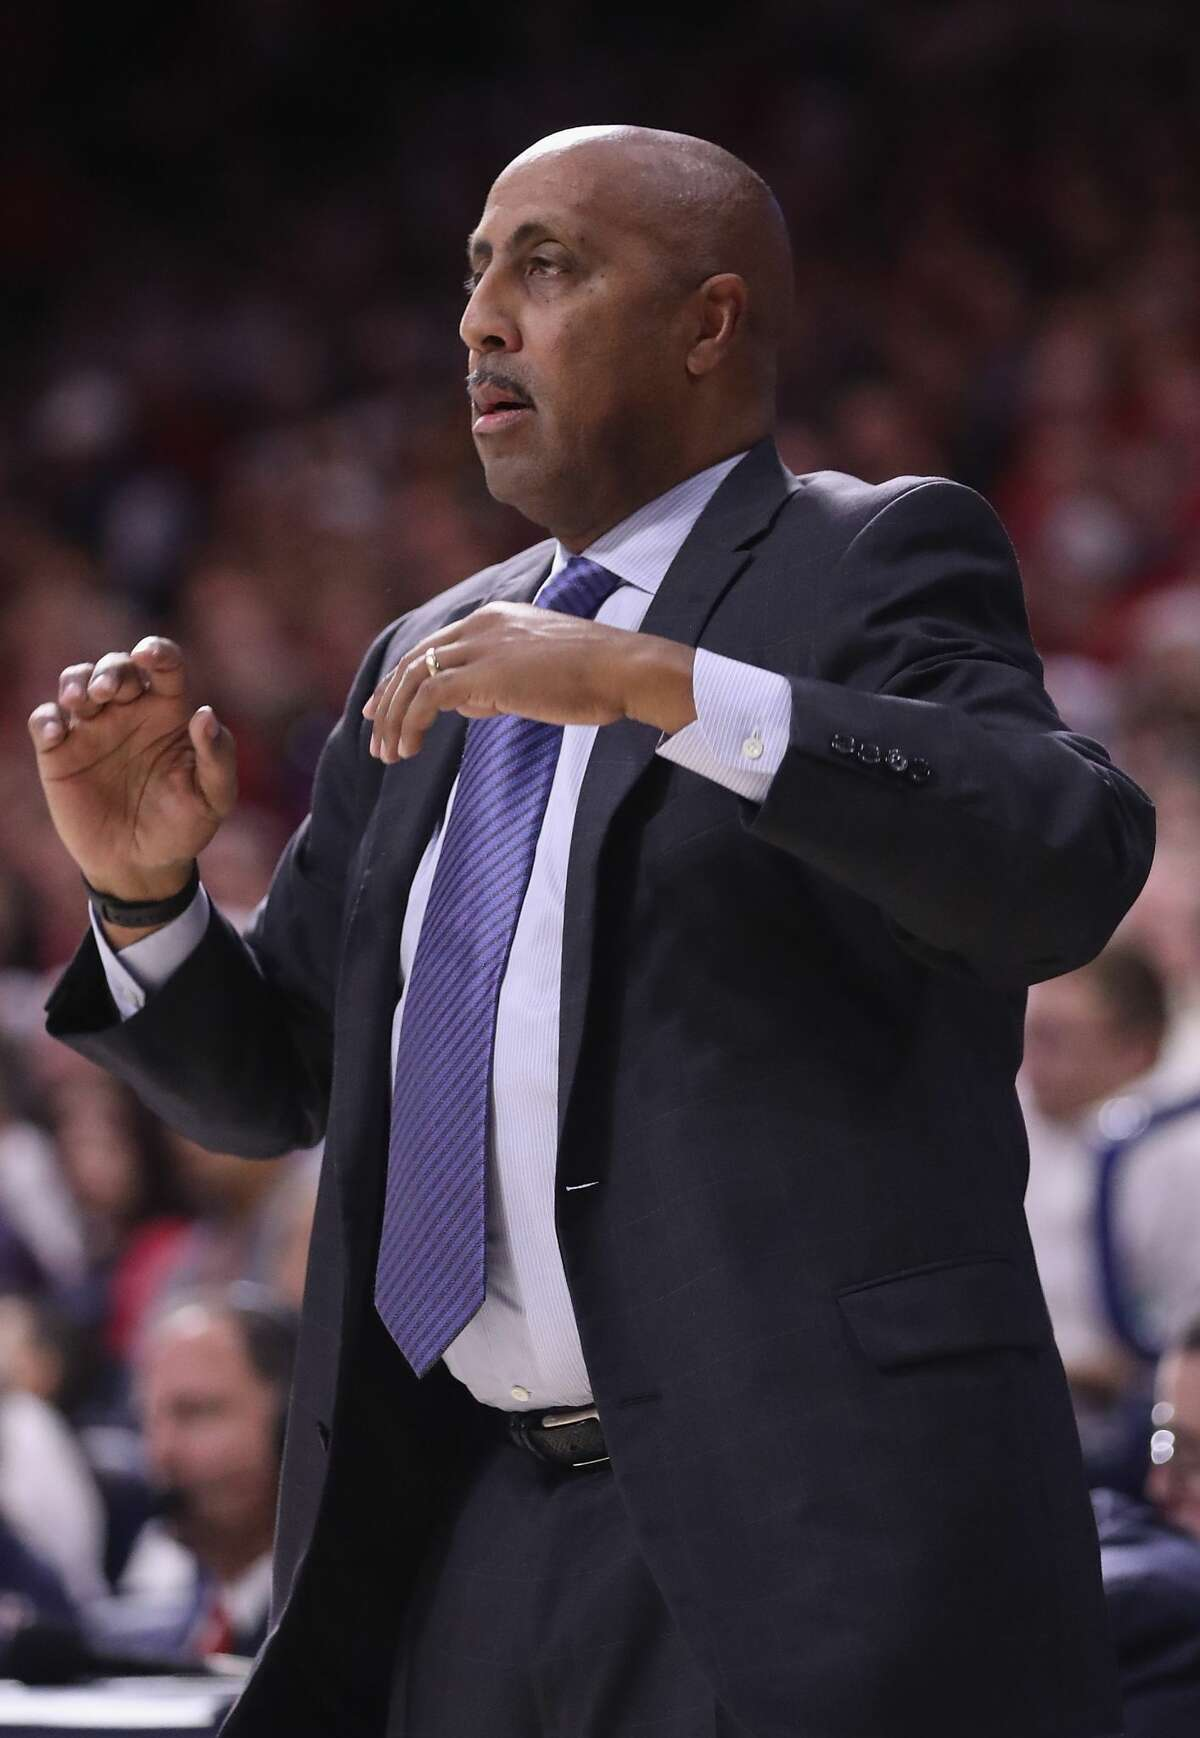 TUCSON, AZ - DECEMBER 09: Associate coach Lorenzo Romar of the Arizona Wildcats reacts during the second half of the college basketball game against the Alabama Crimson Tide at McKale Center on December 9, 2017 in Tucson, Arizona. The Wildcats defeated the Crimson Tide 88-82. (Photo by Christian Petersen/Getty Images)